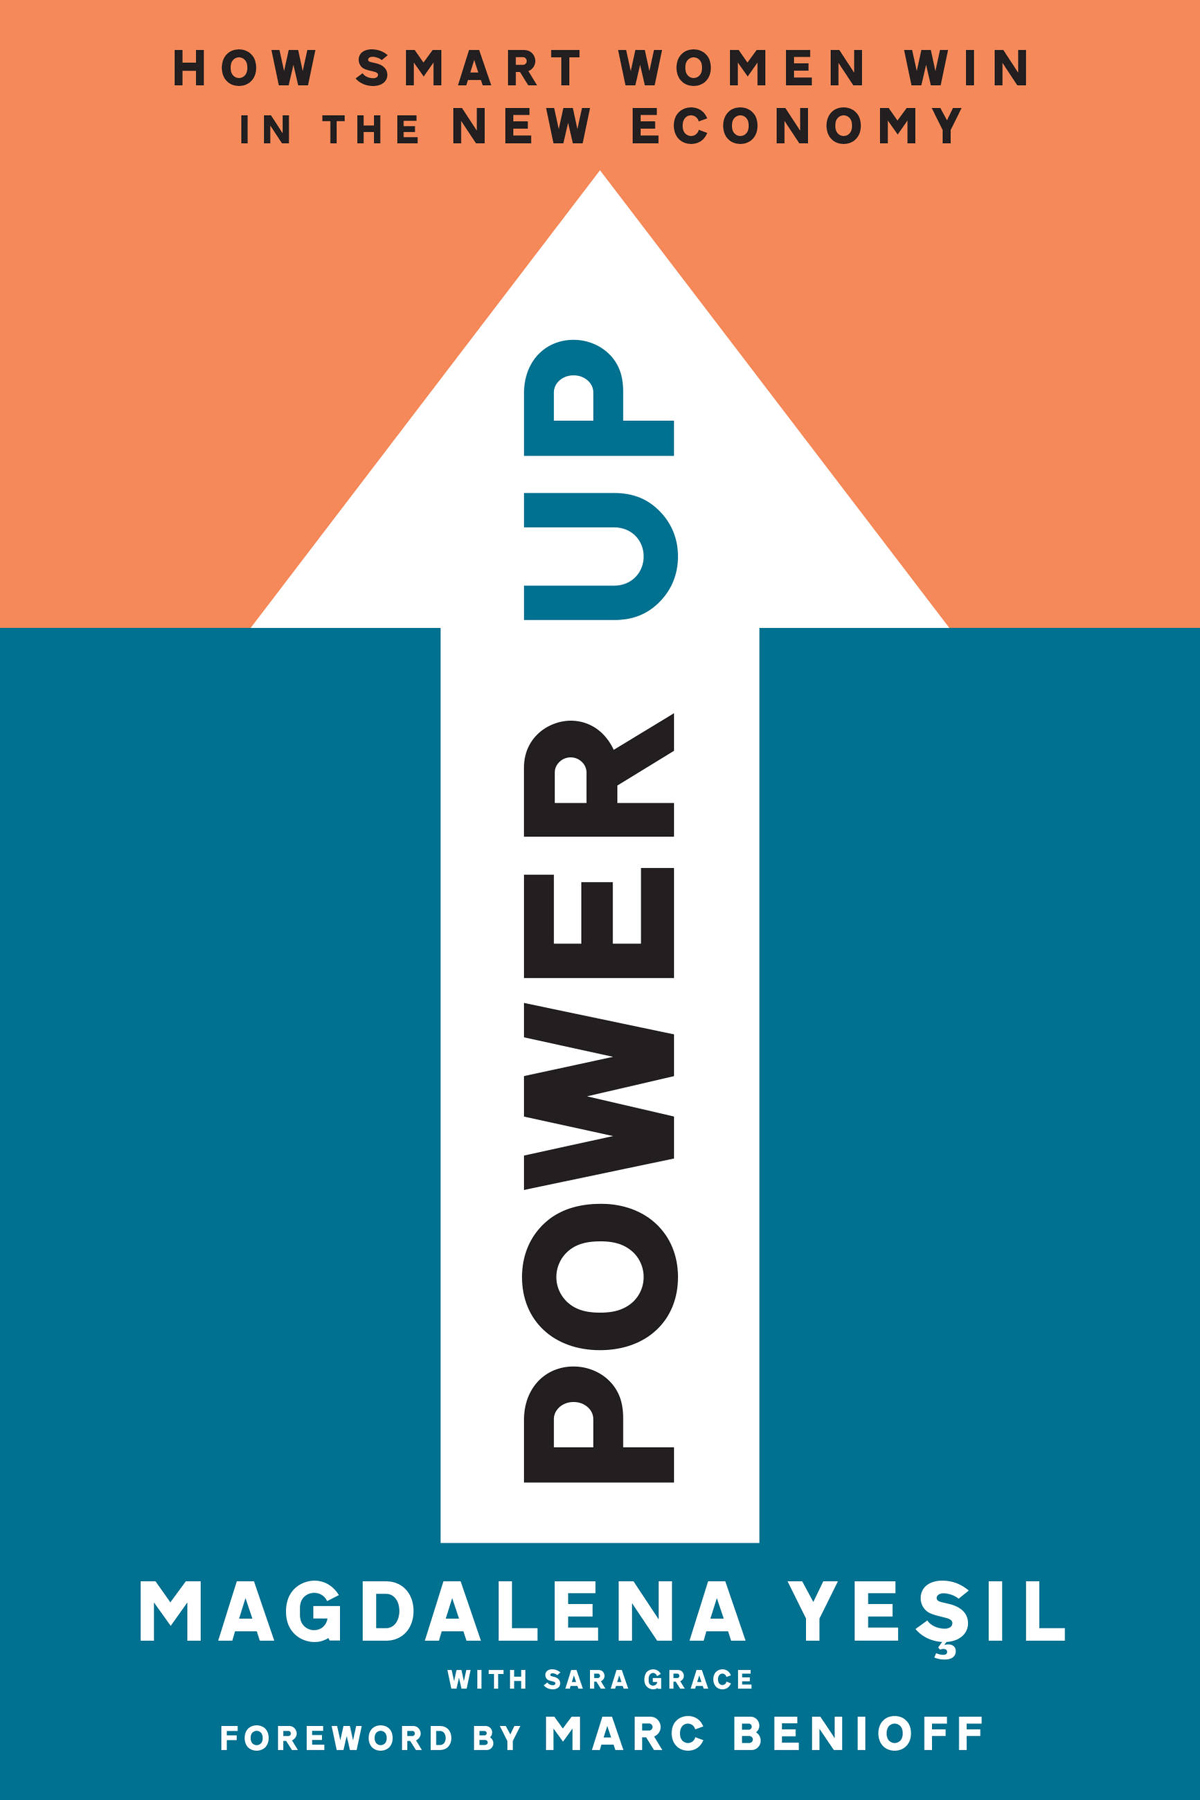 Power Up: How Smart Women Win in the New Economy - Magdalena Yeşil [kindle] [mobi]